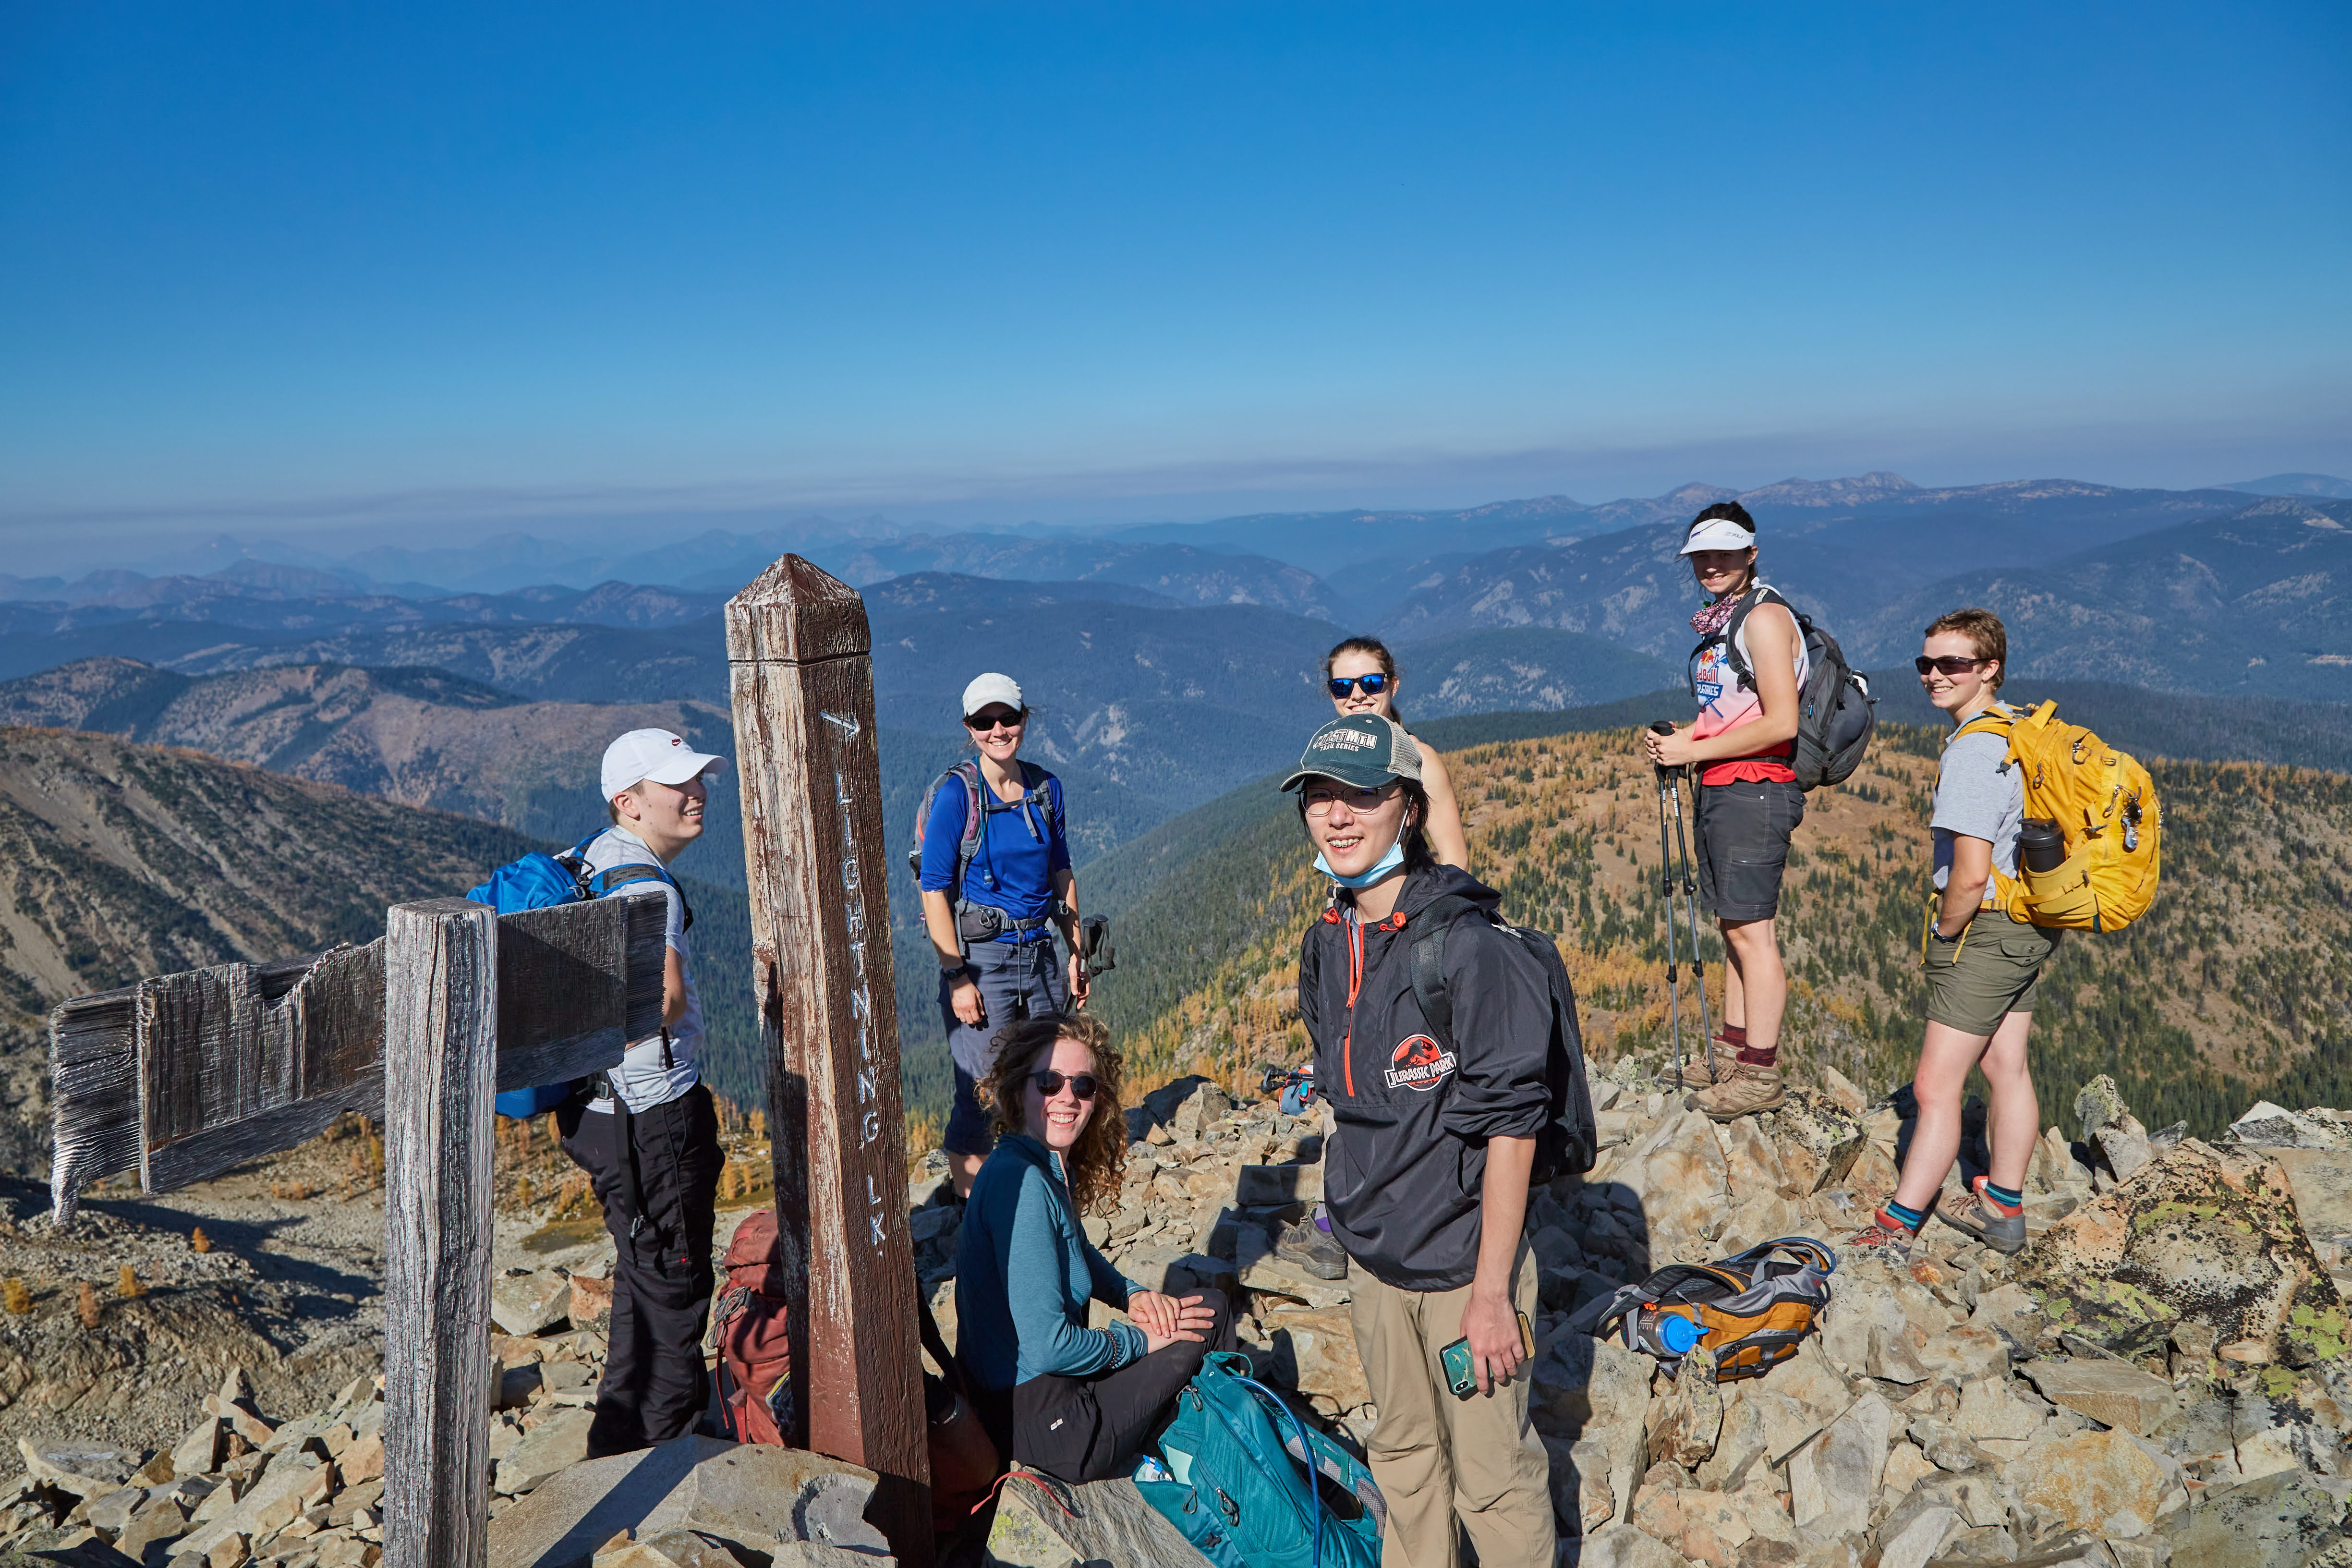 VOC day-hikers at the top of Mt. Frosty. Photo by Radek Kloska.